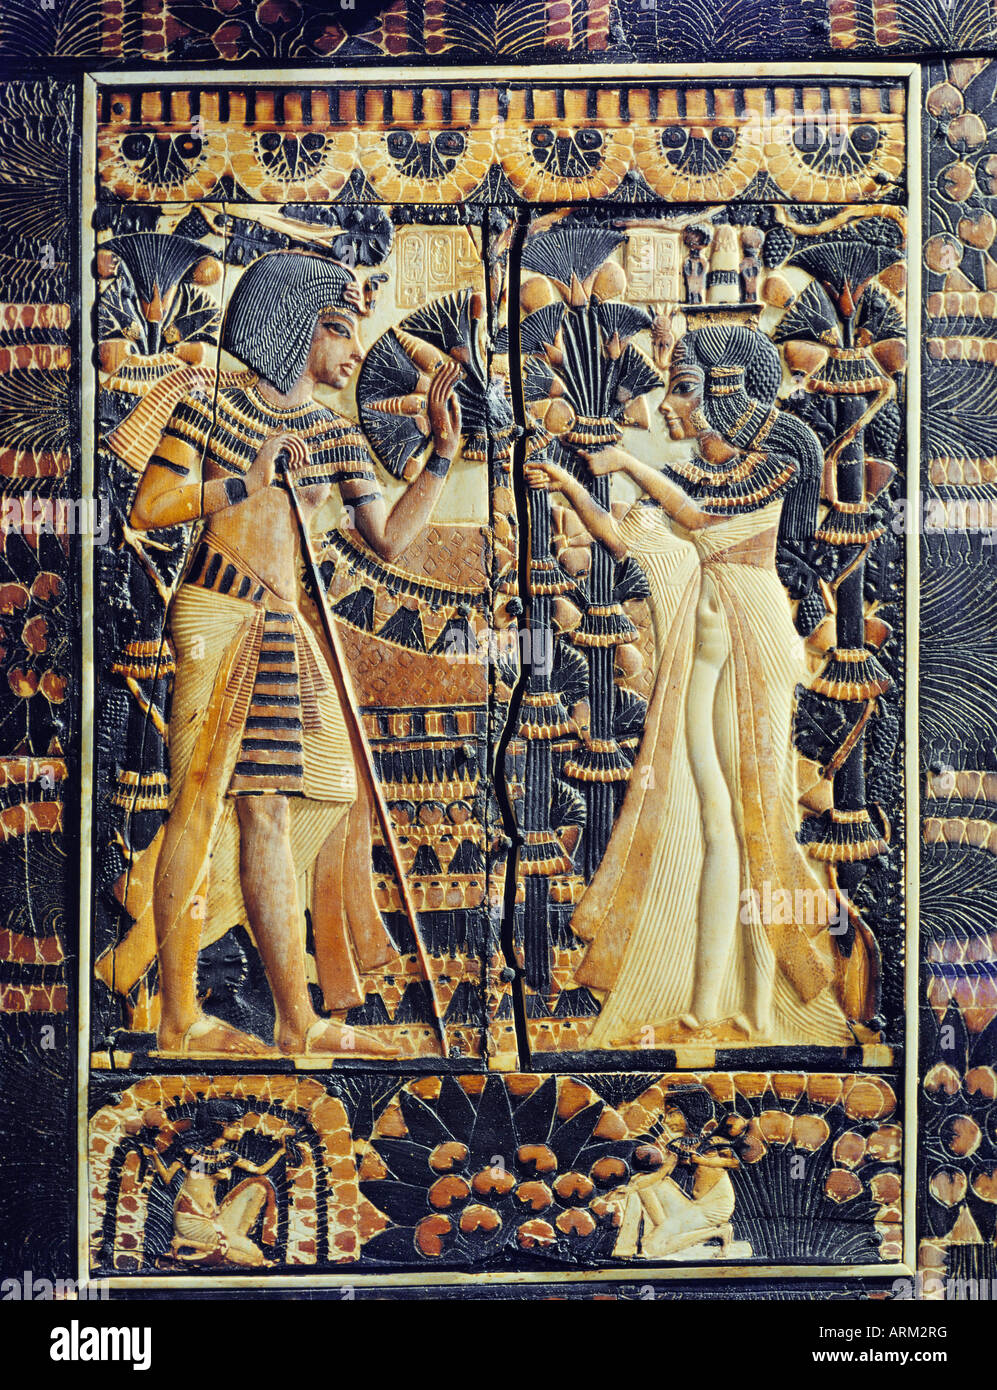 Painted ivory plaque, from the tomb of the pharaoh Tutankhamun - Stock Image